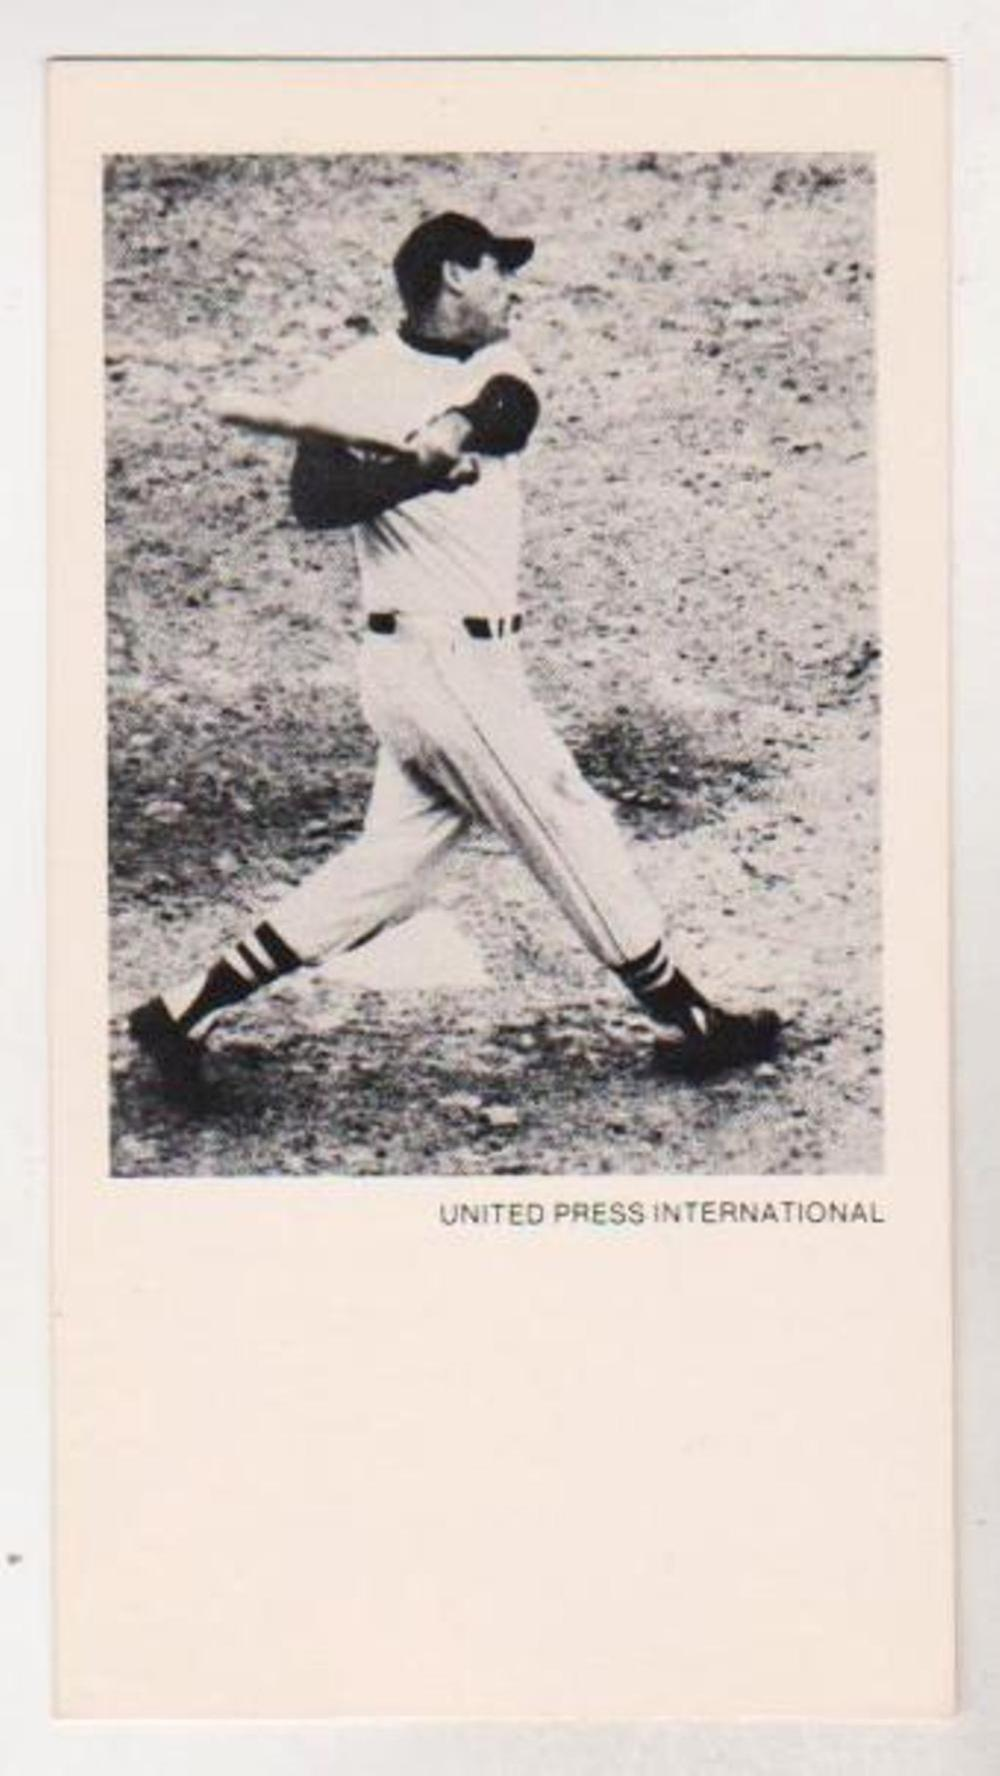 1979 UPI Ted Williams Greatest Moments in Sports History Card - EXTREMELY RARE!